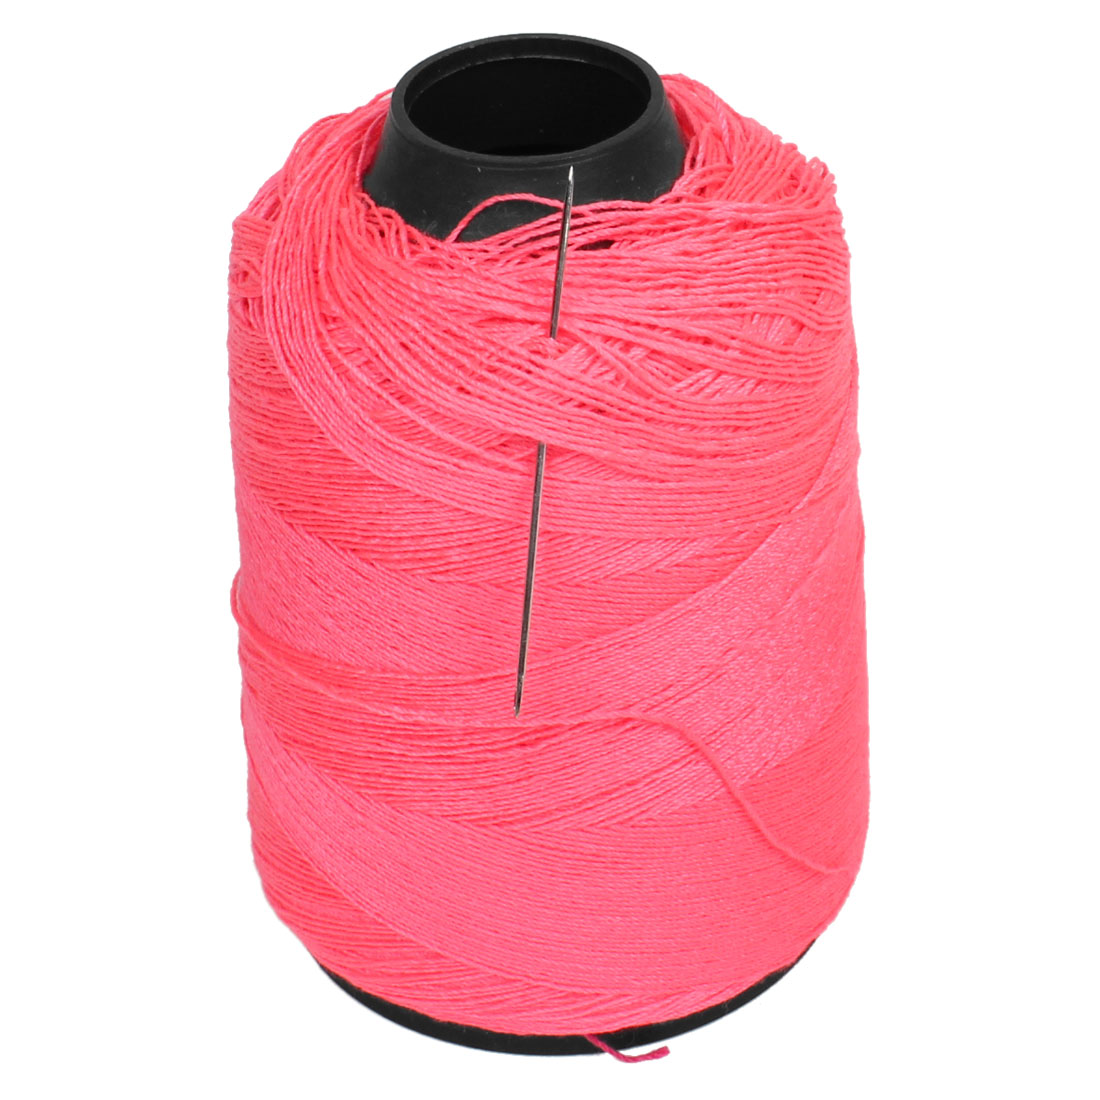 1 Roll Tailoring Cotton Line Sewing Thread Spool Pink + Needle